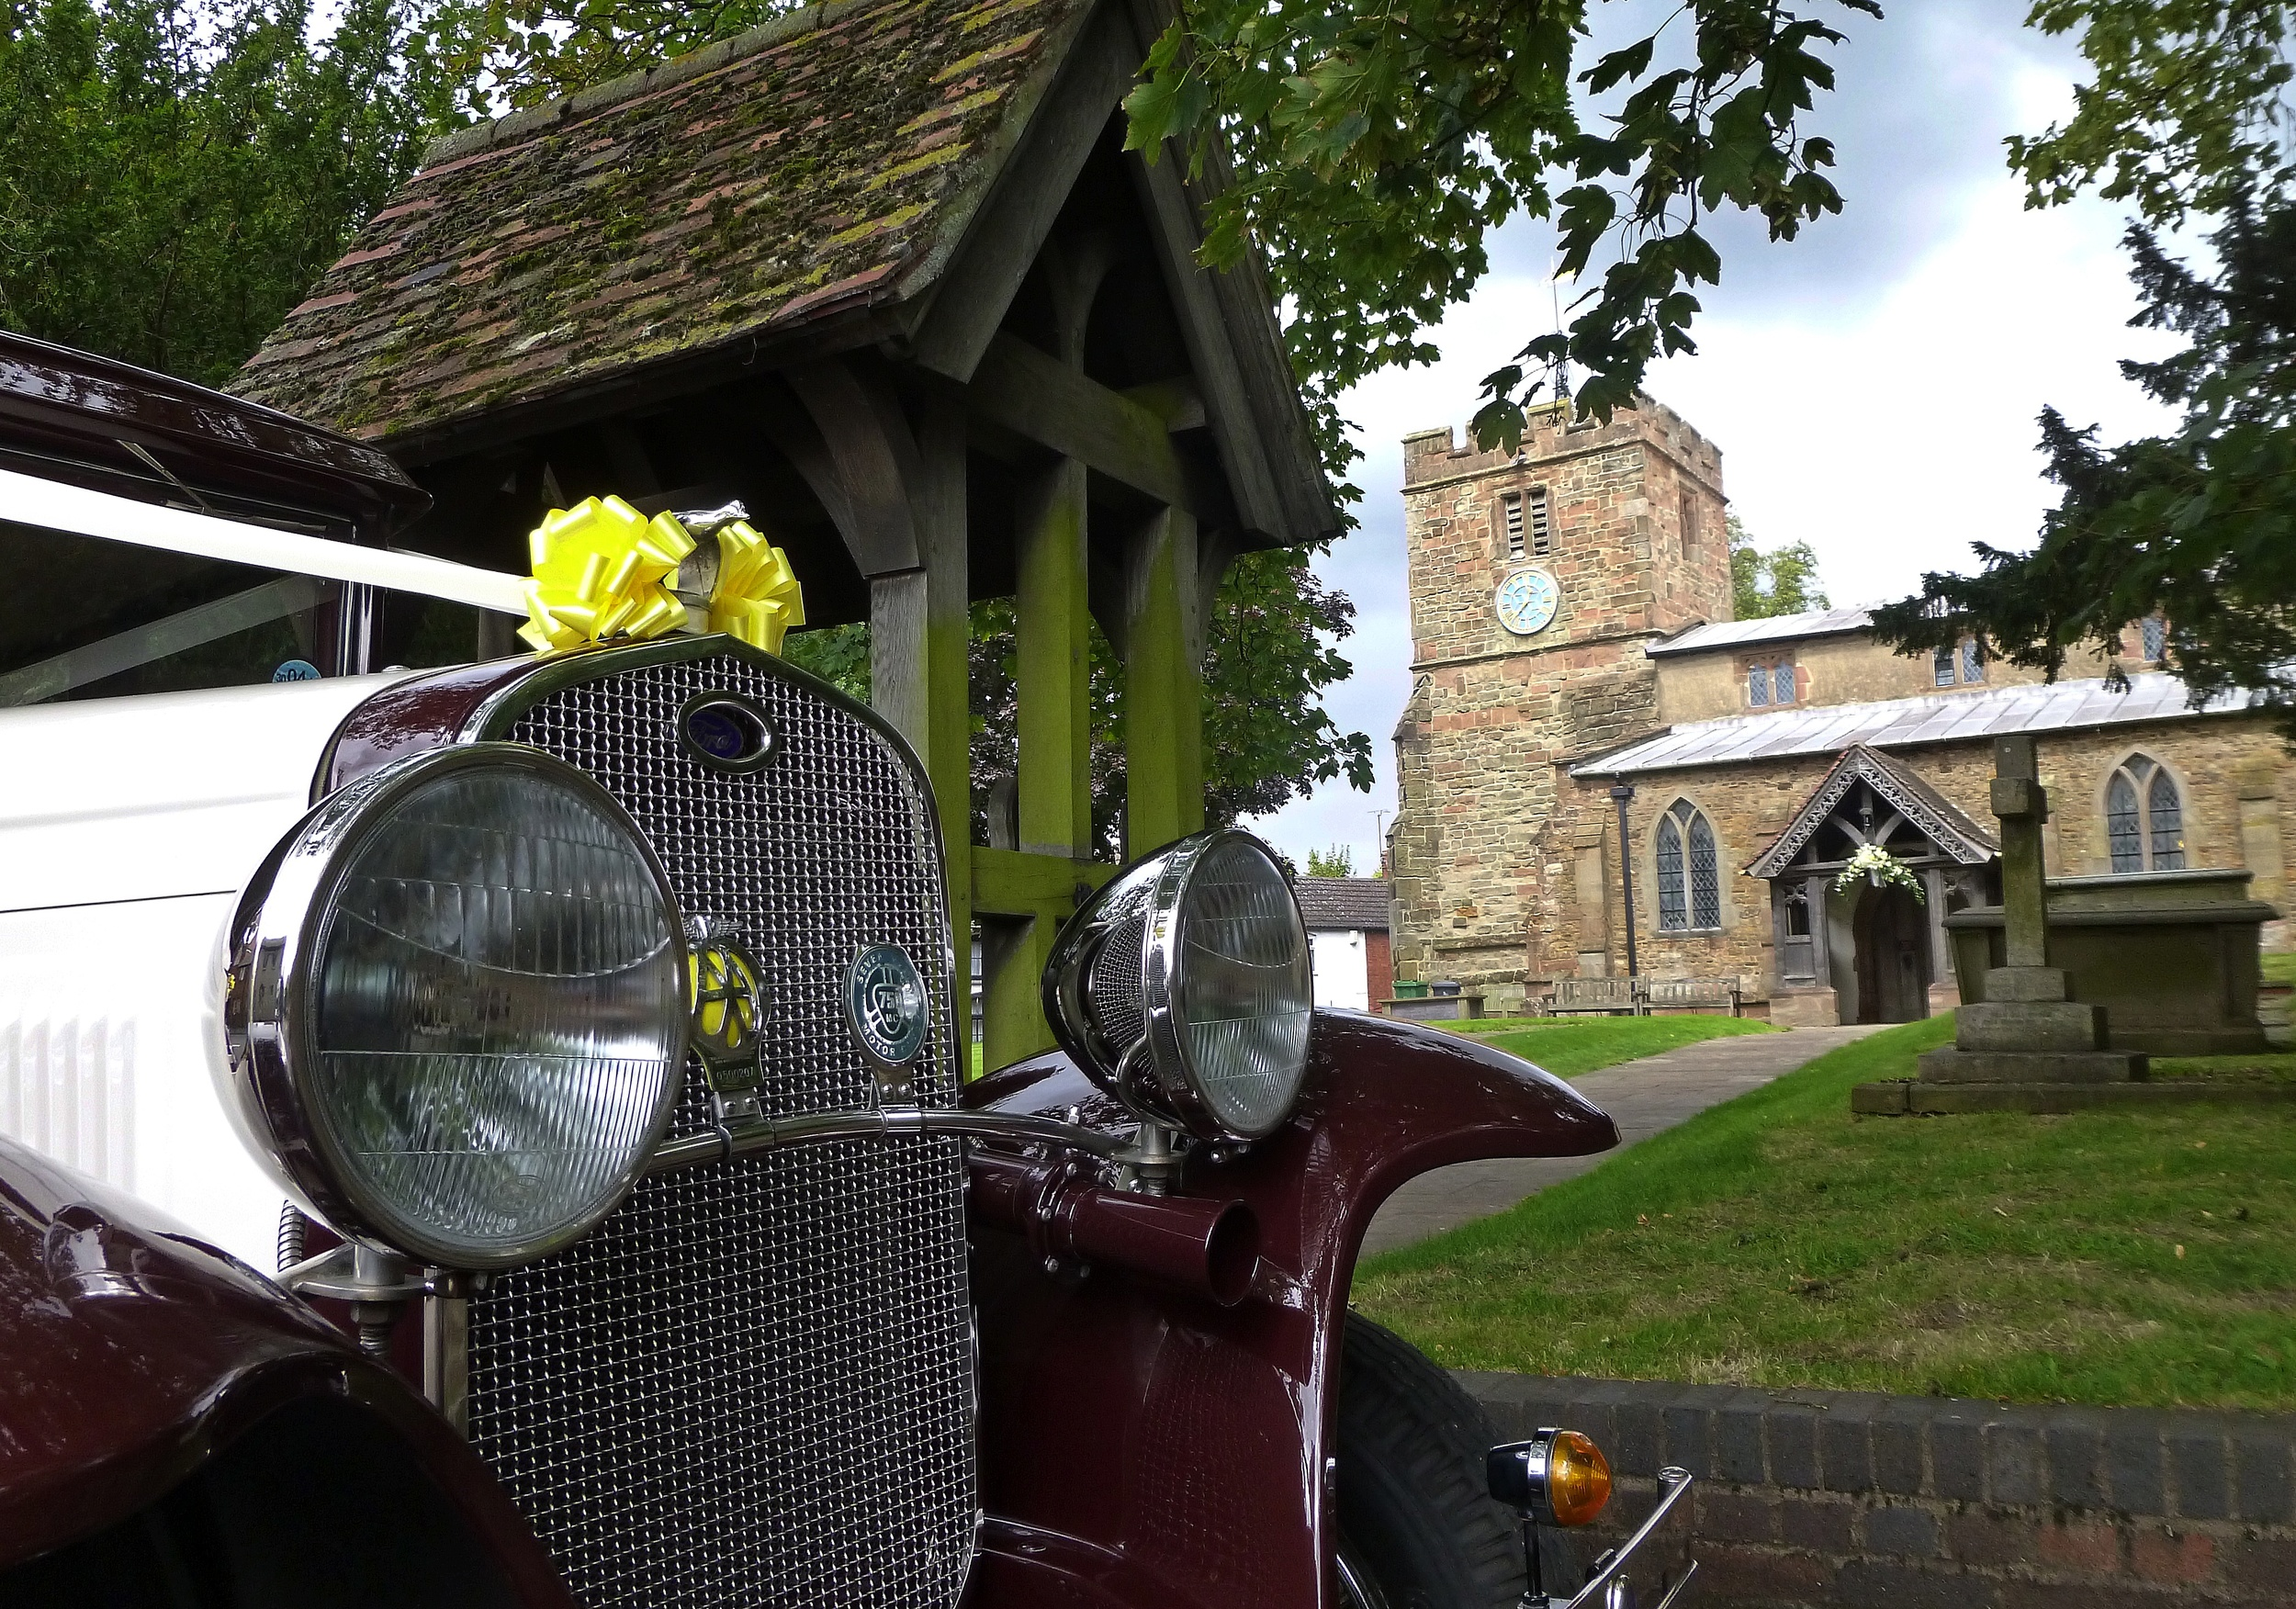 St Mary's Church, Clifton upon Dunsmore, Rugby. The Badsworth patiently waiting for Joanna And Gareth to emerge from Church as Husband and Wife.